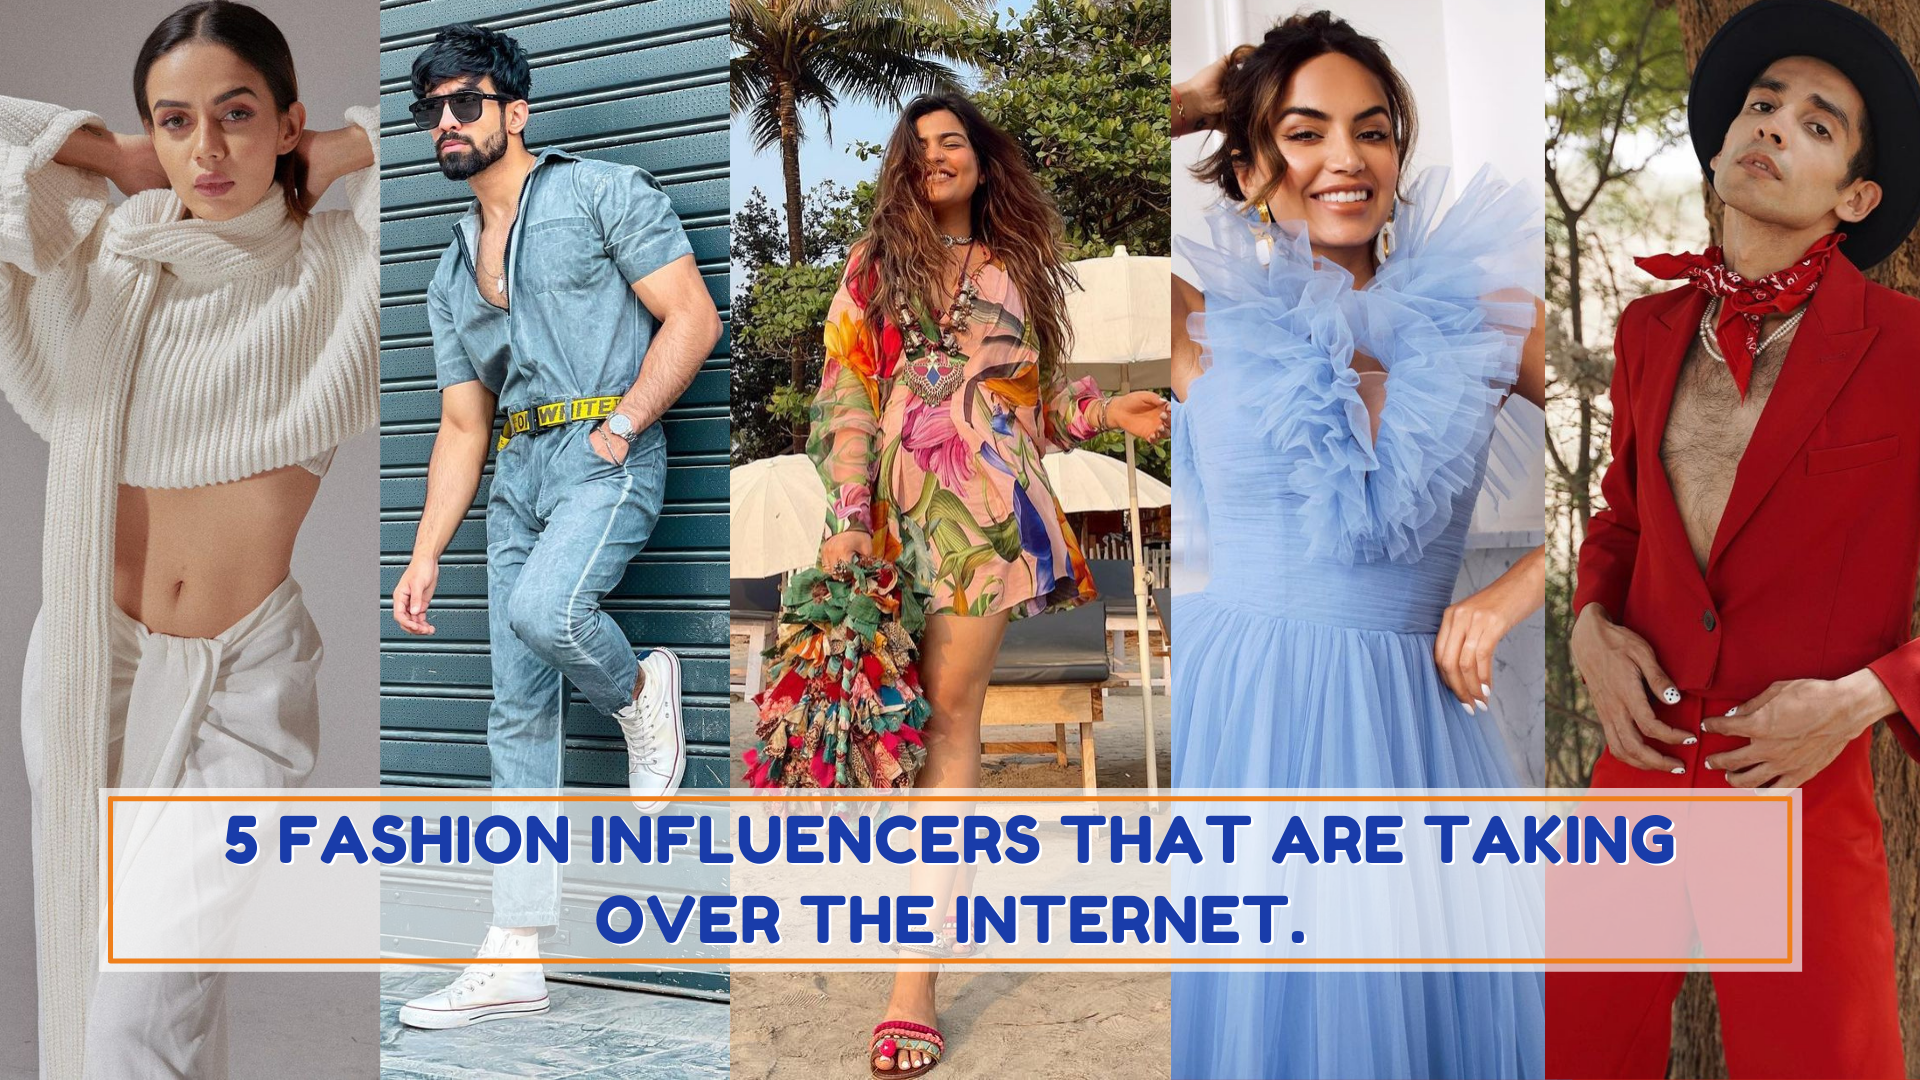 5 fashion influencers that are taking over the internet.